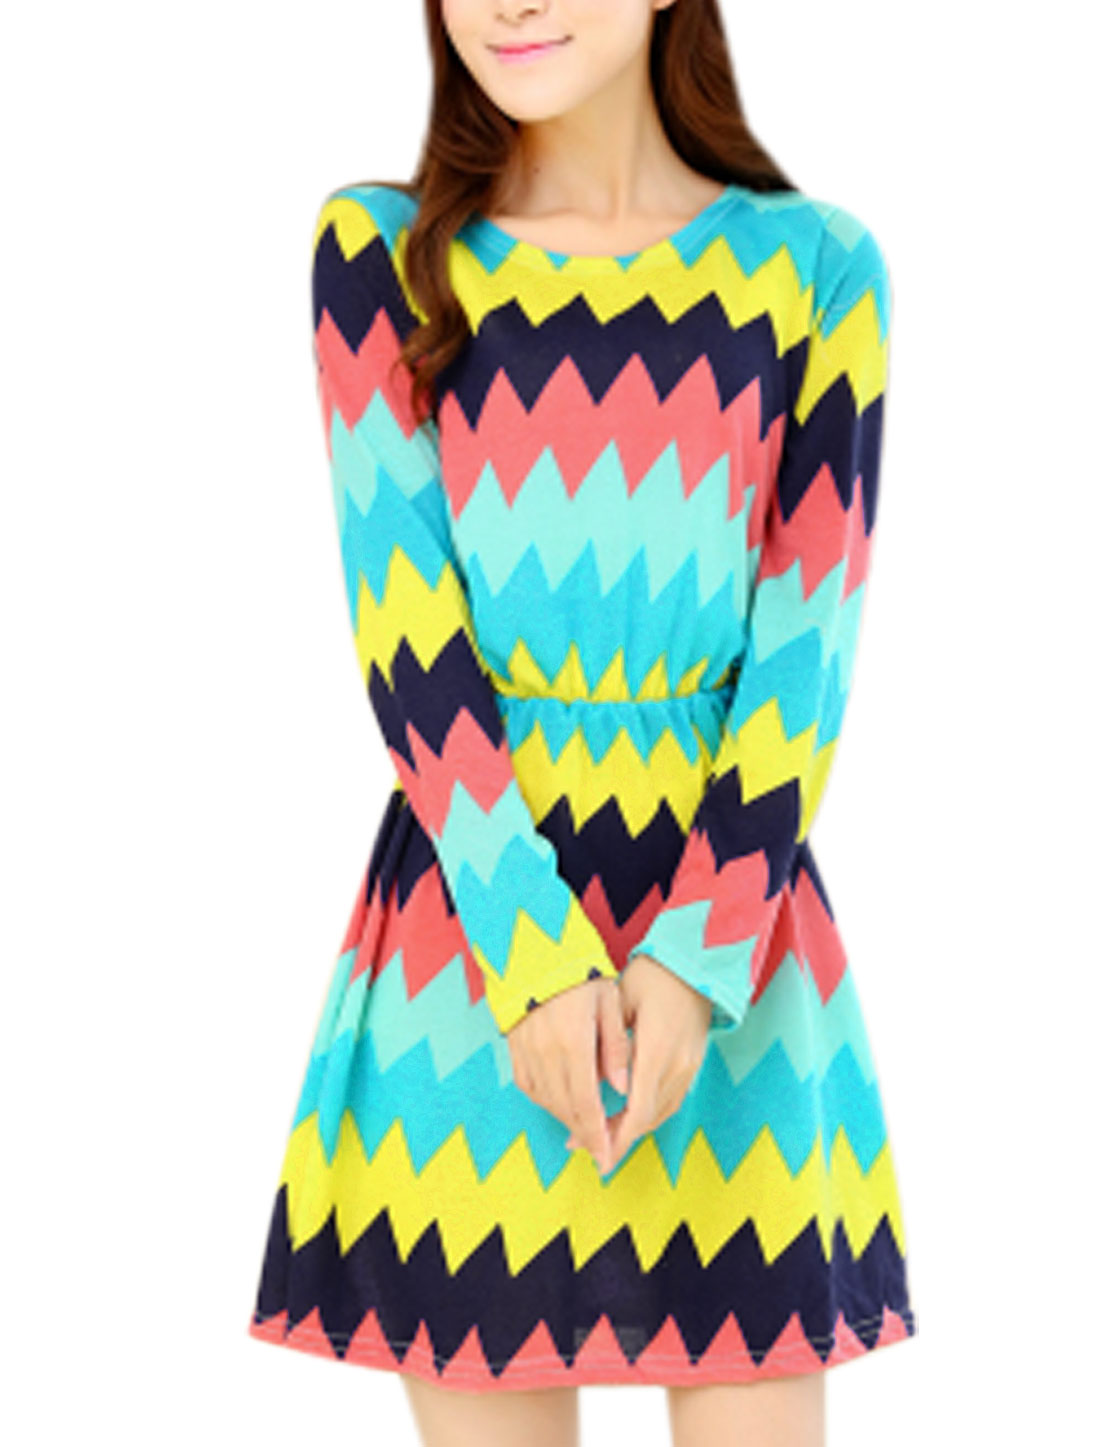 Women Stylish Allover Zigzag Print A Line Unlined Mini Dress Multicolor XS